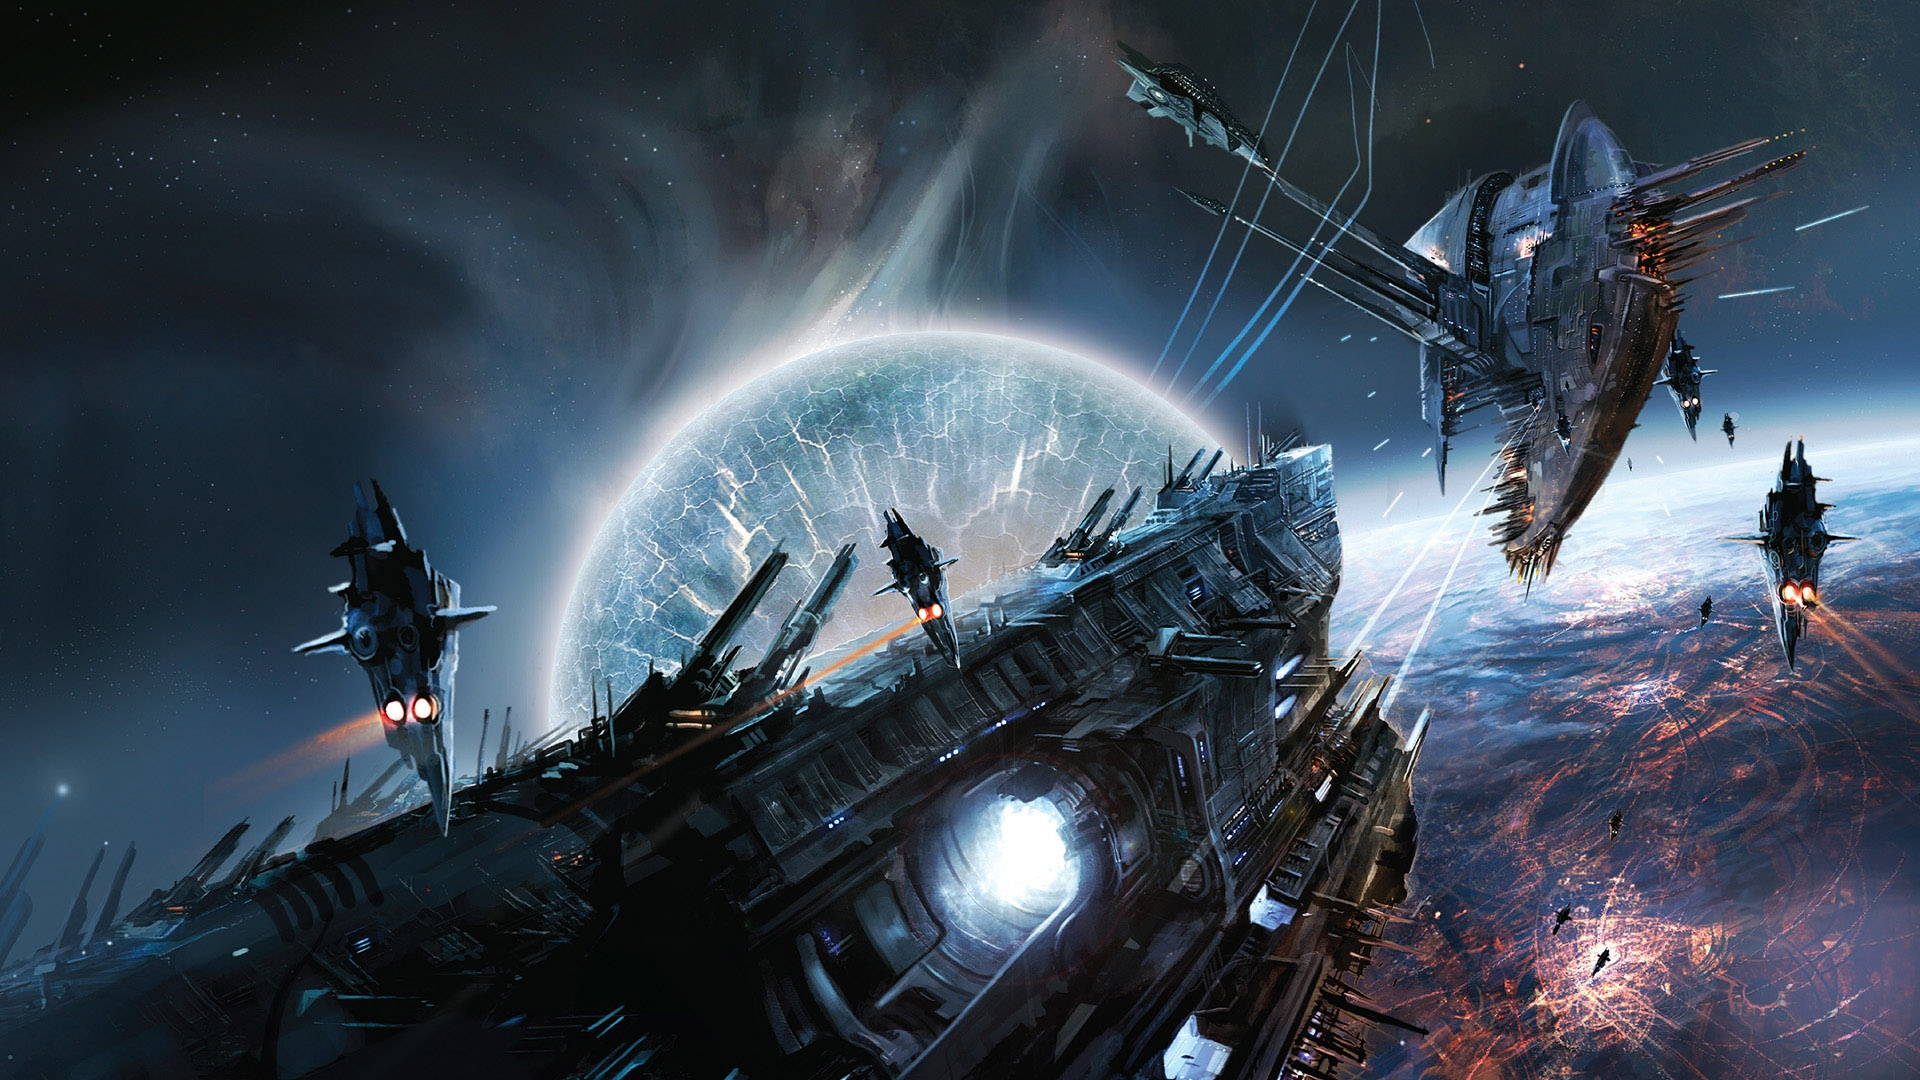 space war game scene wallpapers in jpg format for free download